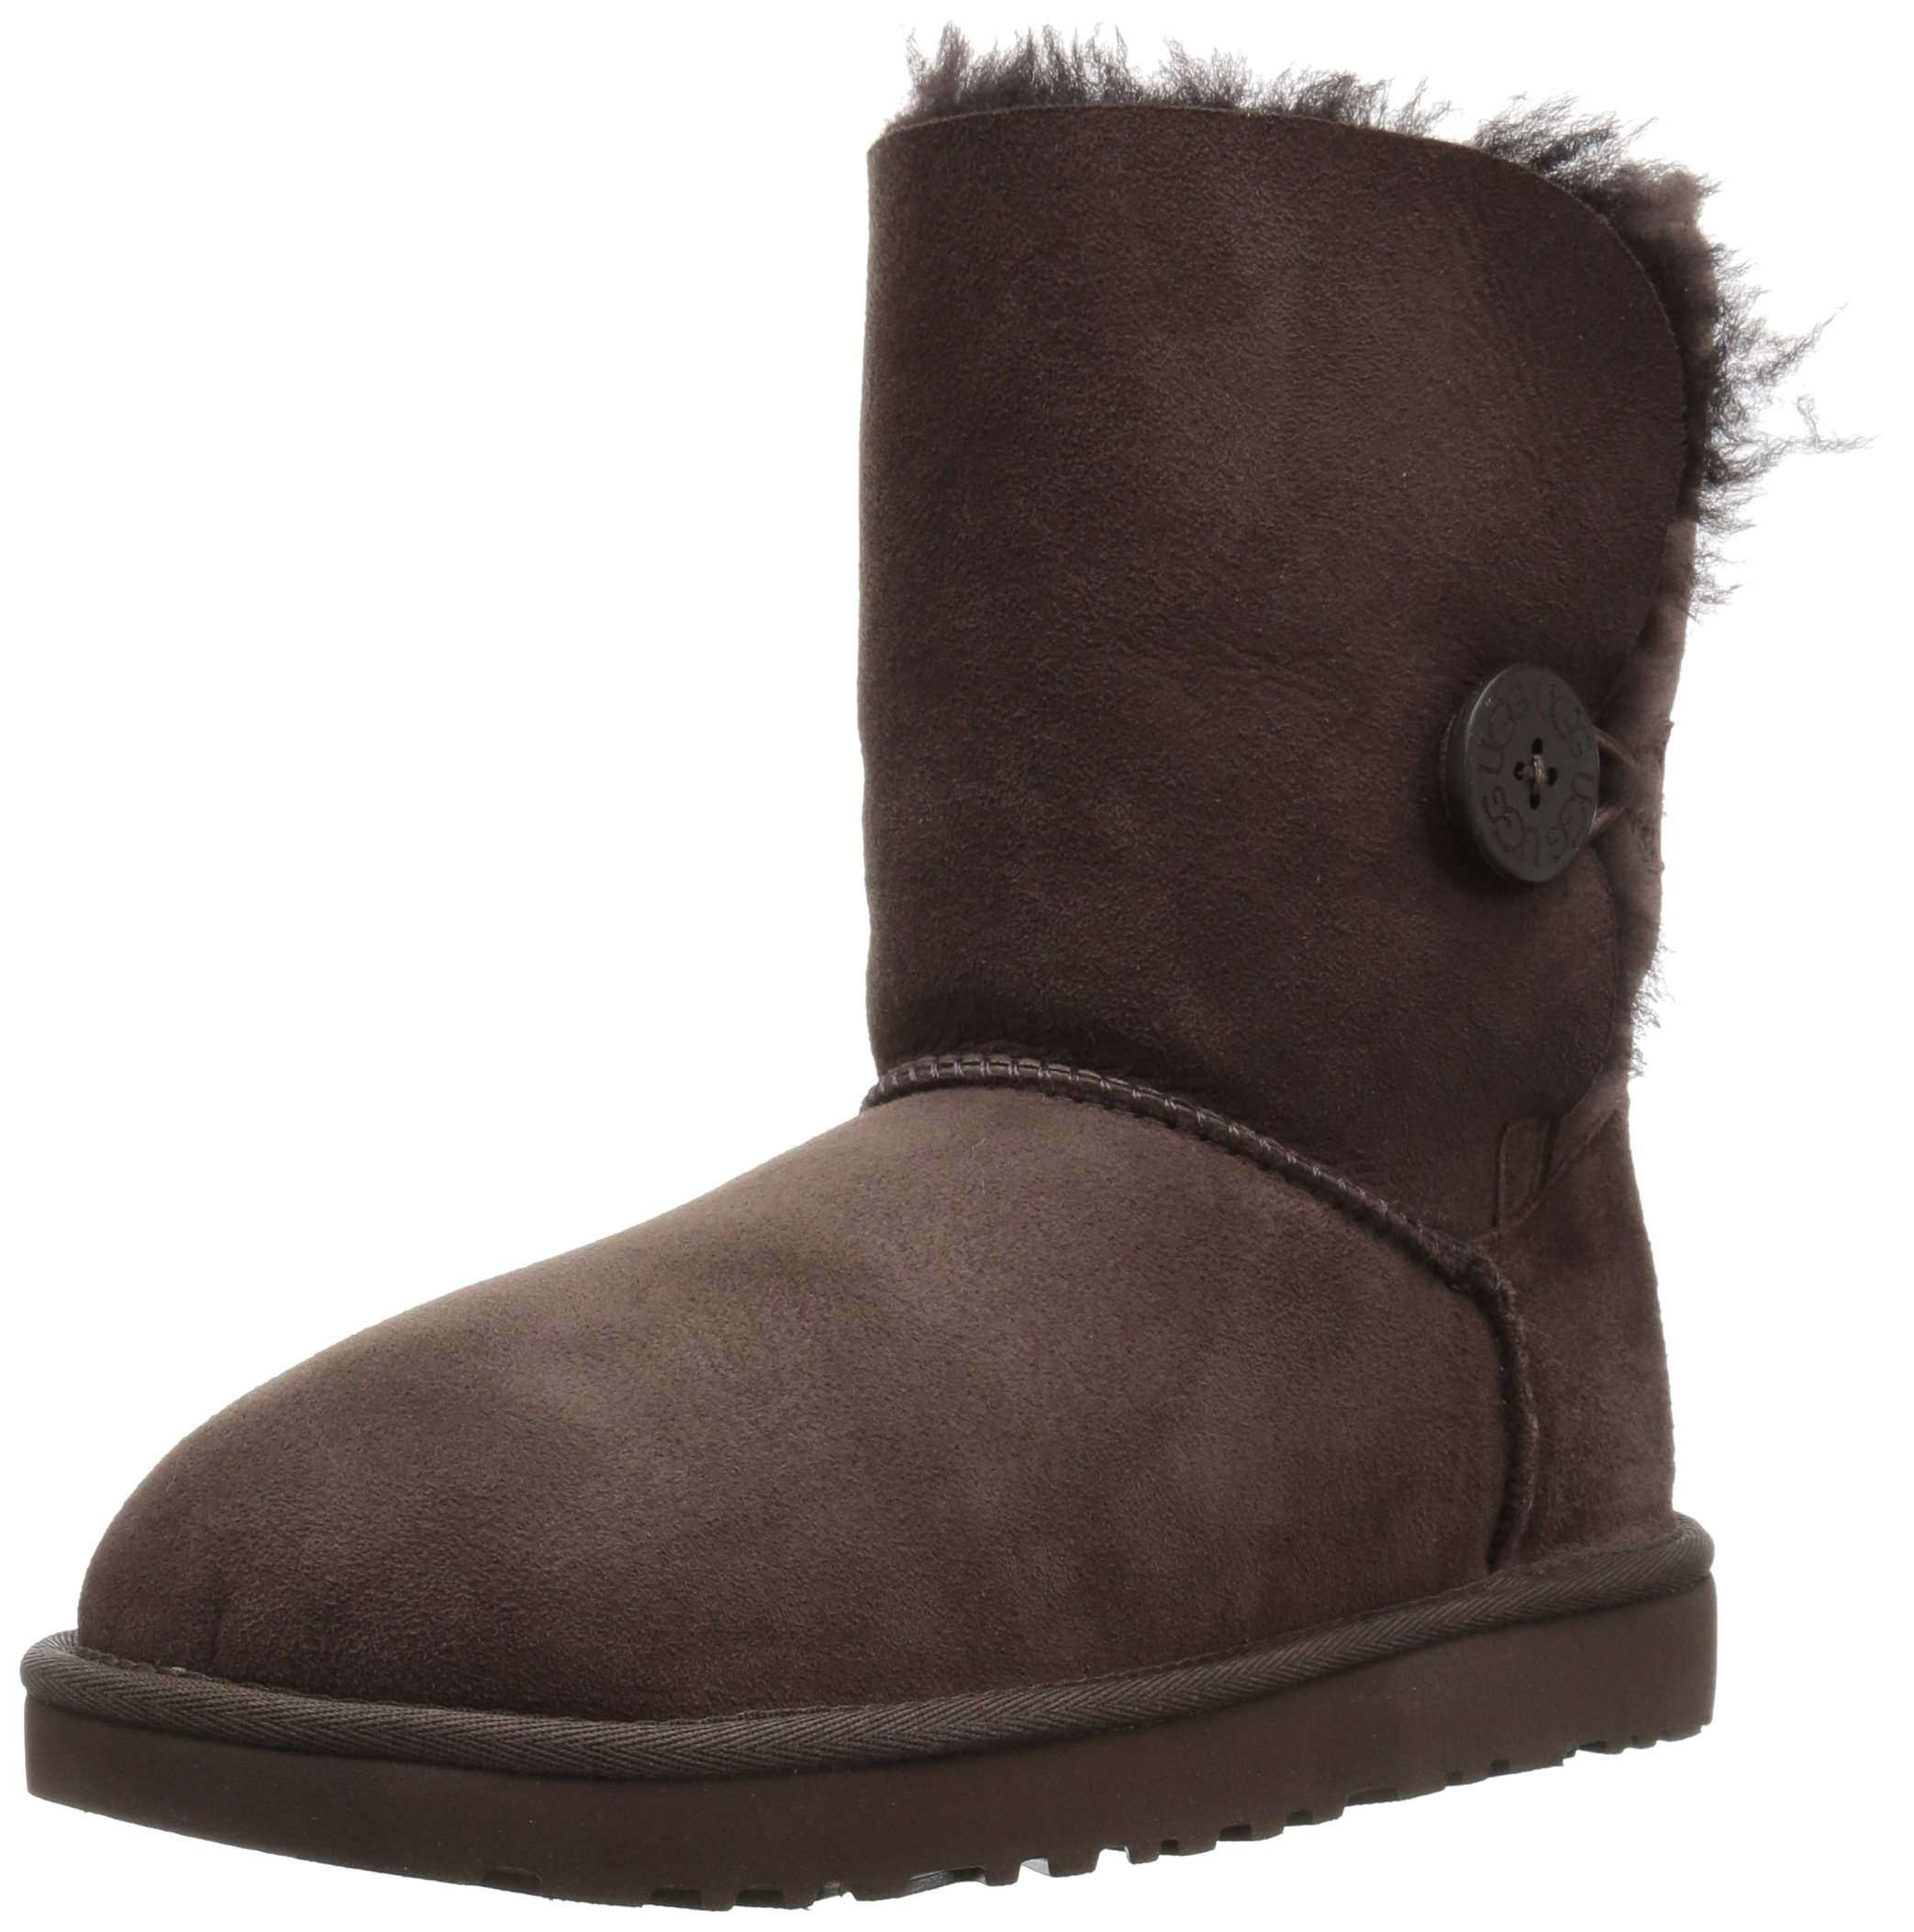 UGG Women's Bailey Button II Winter Boot, Chocolate, 5 B US